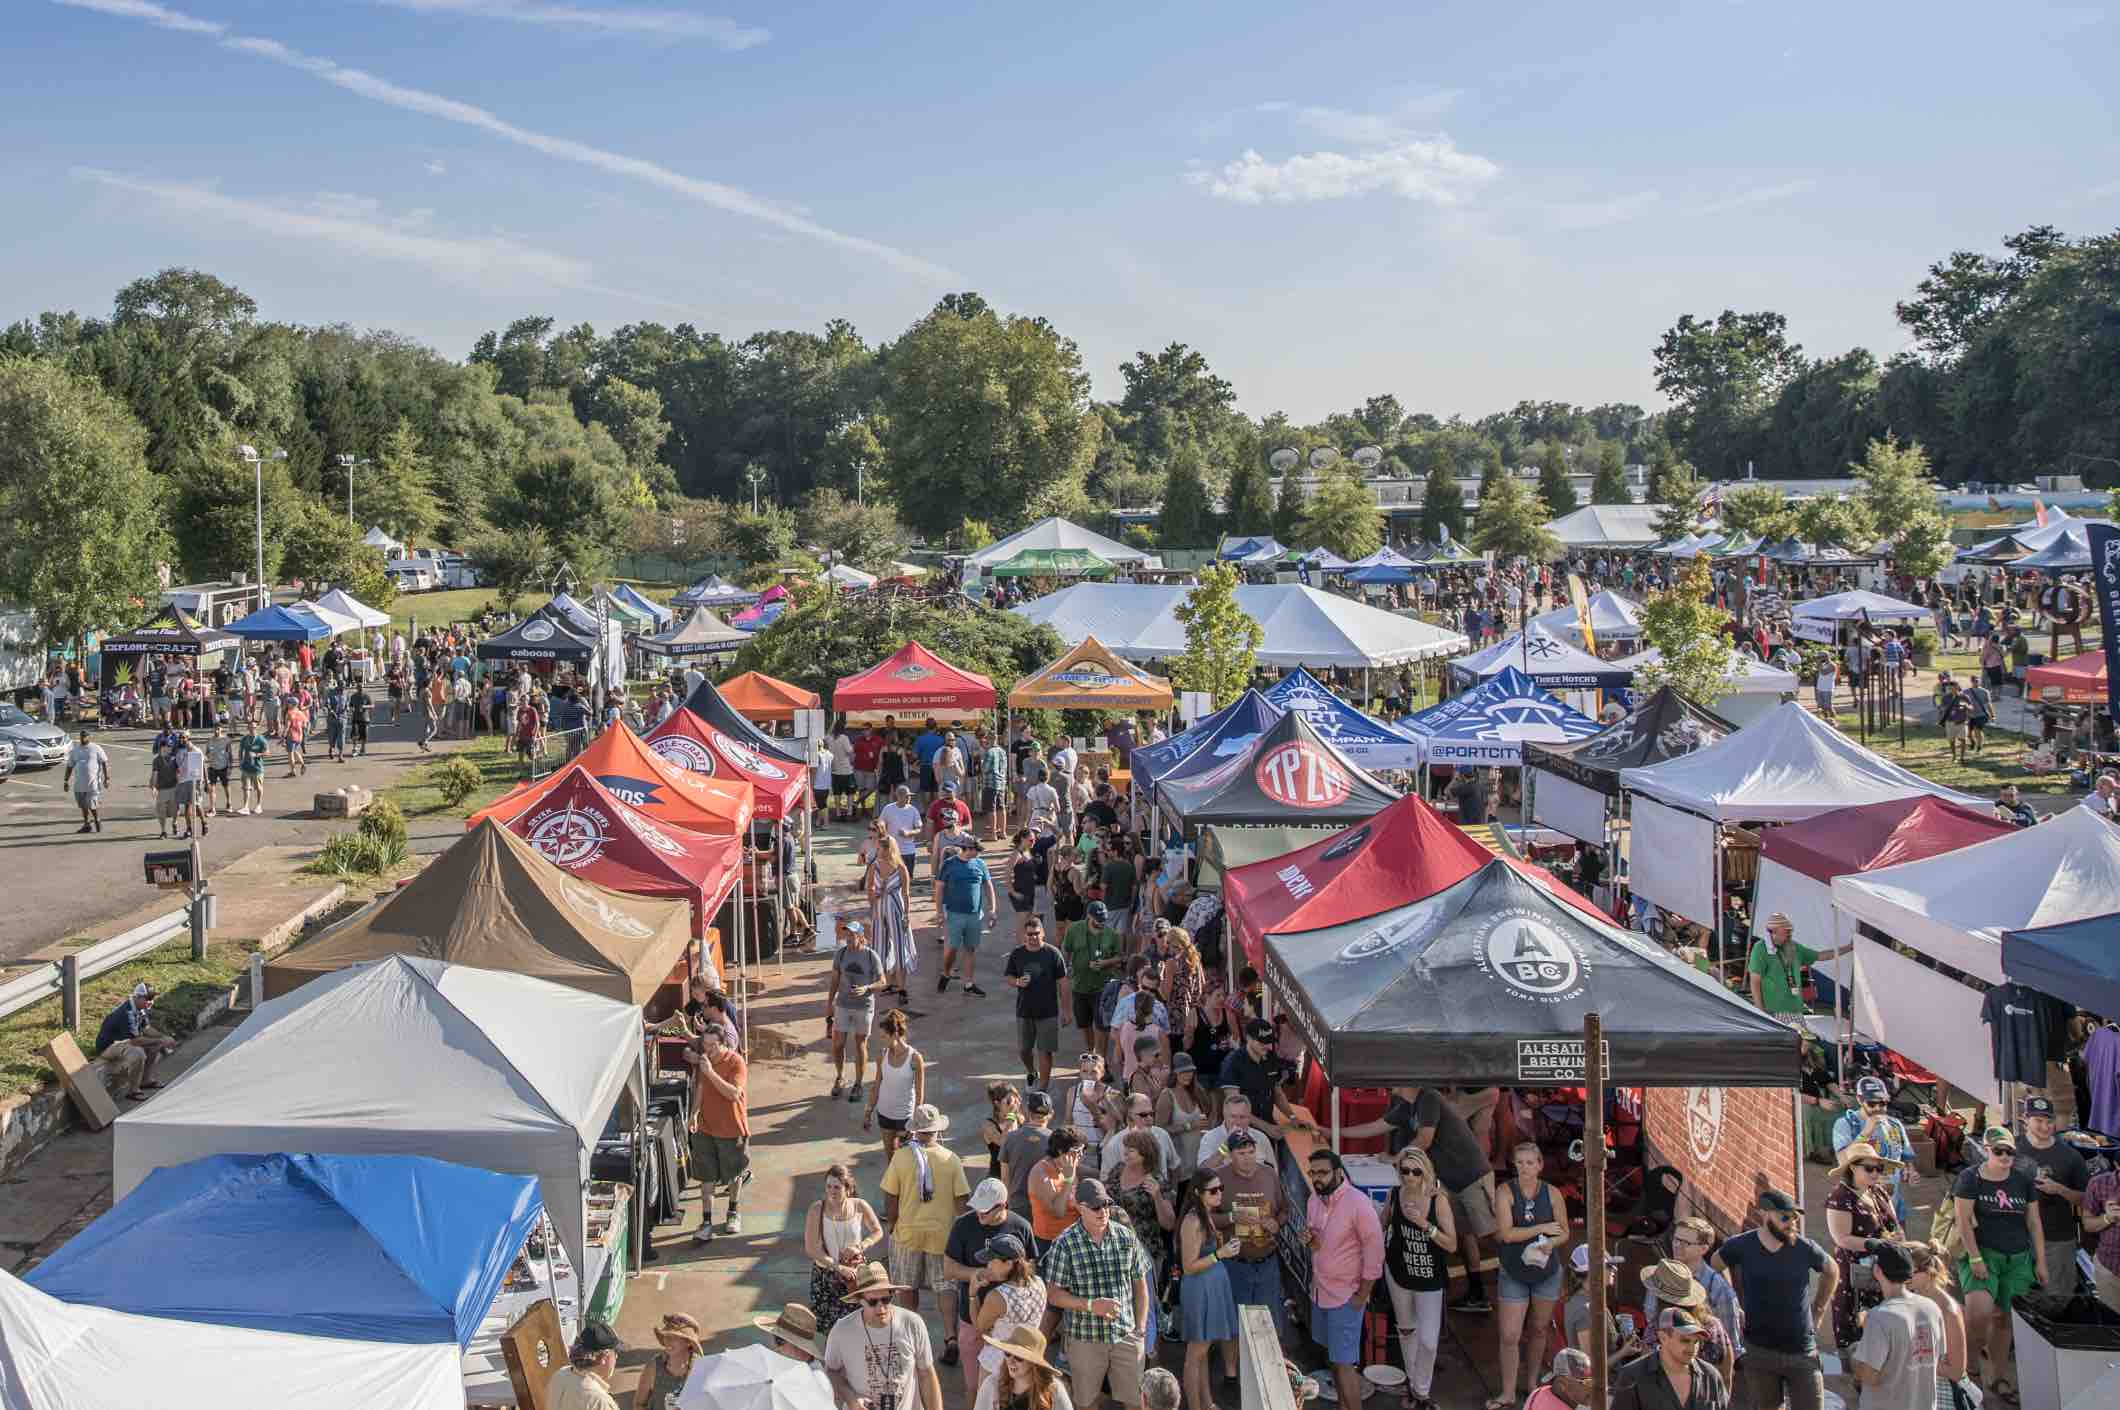 Case Study: Virginia Craft Brewers Fest - Charlottesville, Virginia